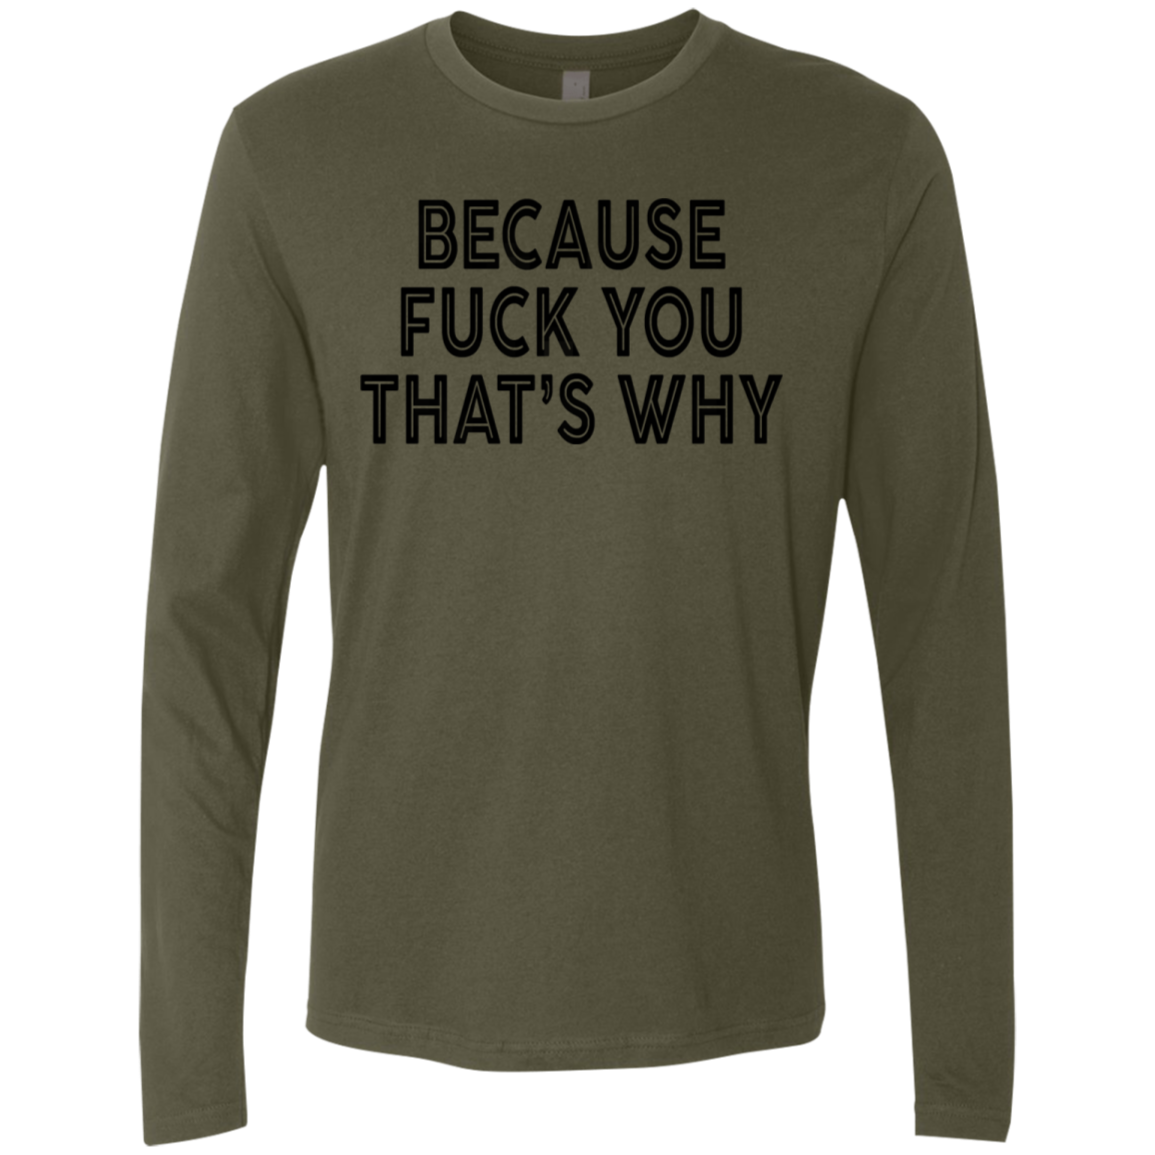 Because Fuck You That's Why Men's Long Sleeve Tee